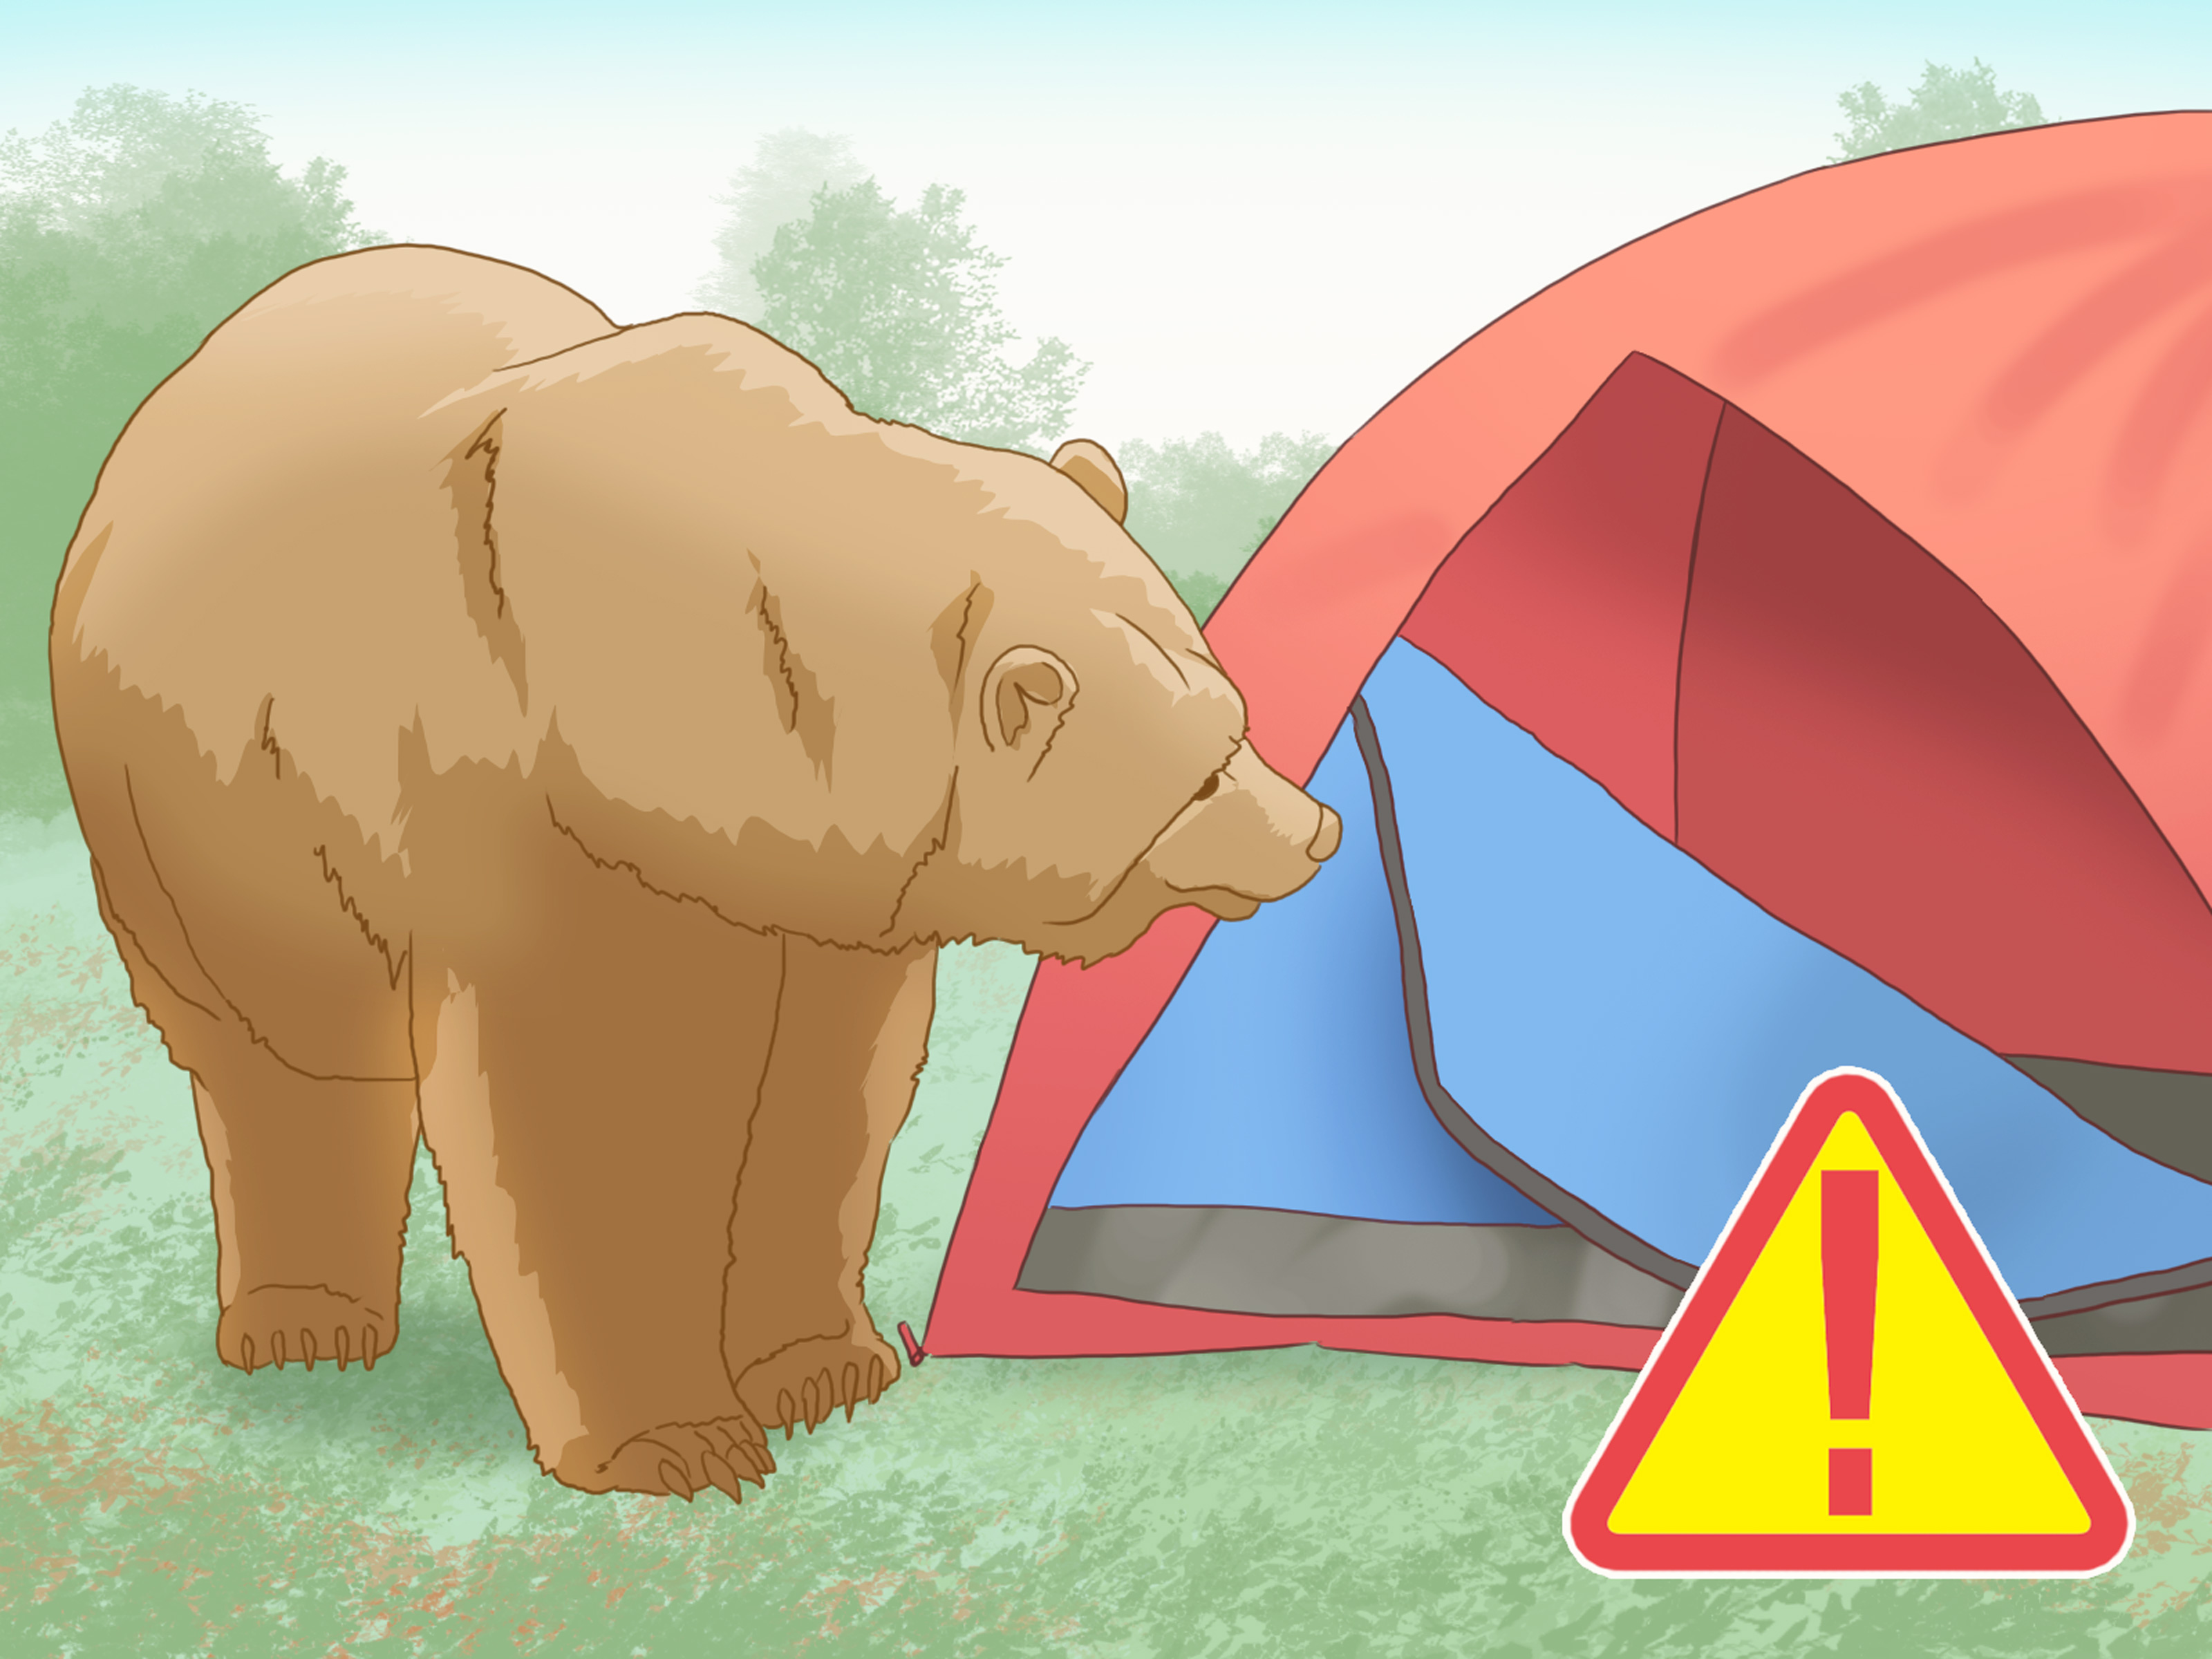 Ua bear down clipart graphic royalty free stock How to Assemble a Tent (with Pictures) - wikiHow graphic royalty free stock